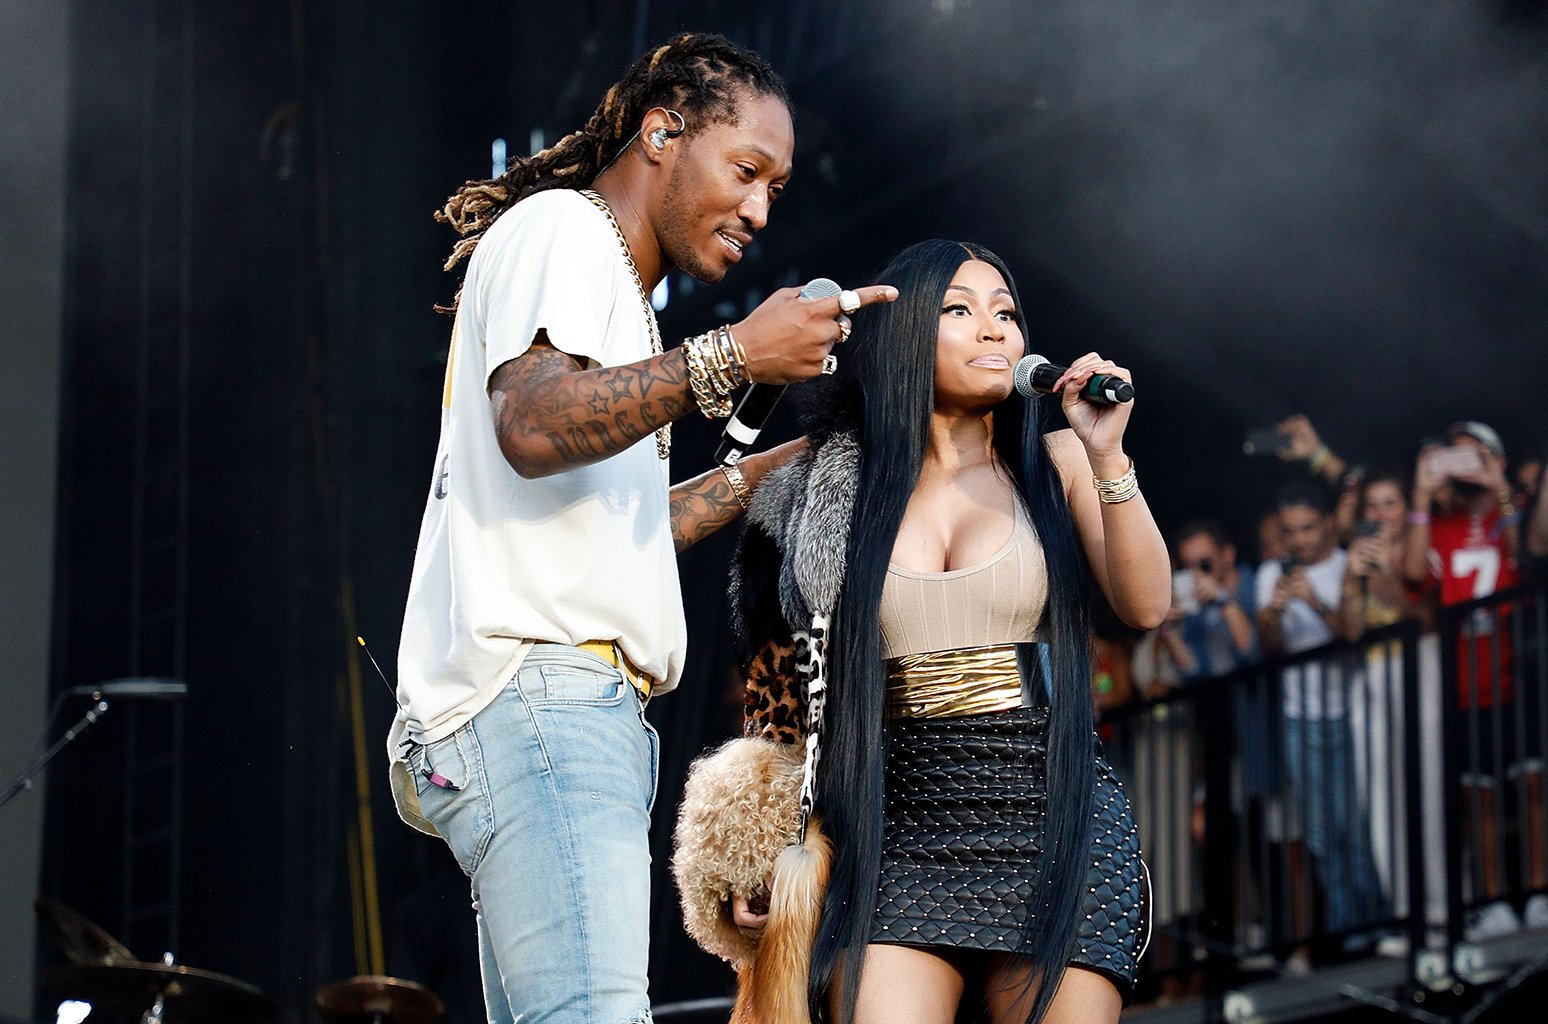 Nicki Minaj announces NICKIHNDRXX tour featuring Future https://t.co/epR0Gda5Br https://t.co/TRCD8mDfES